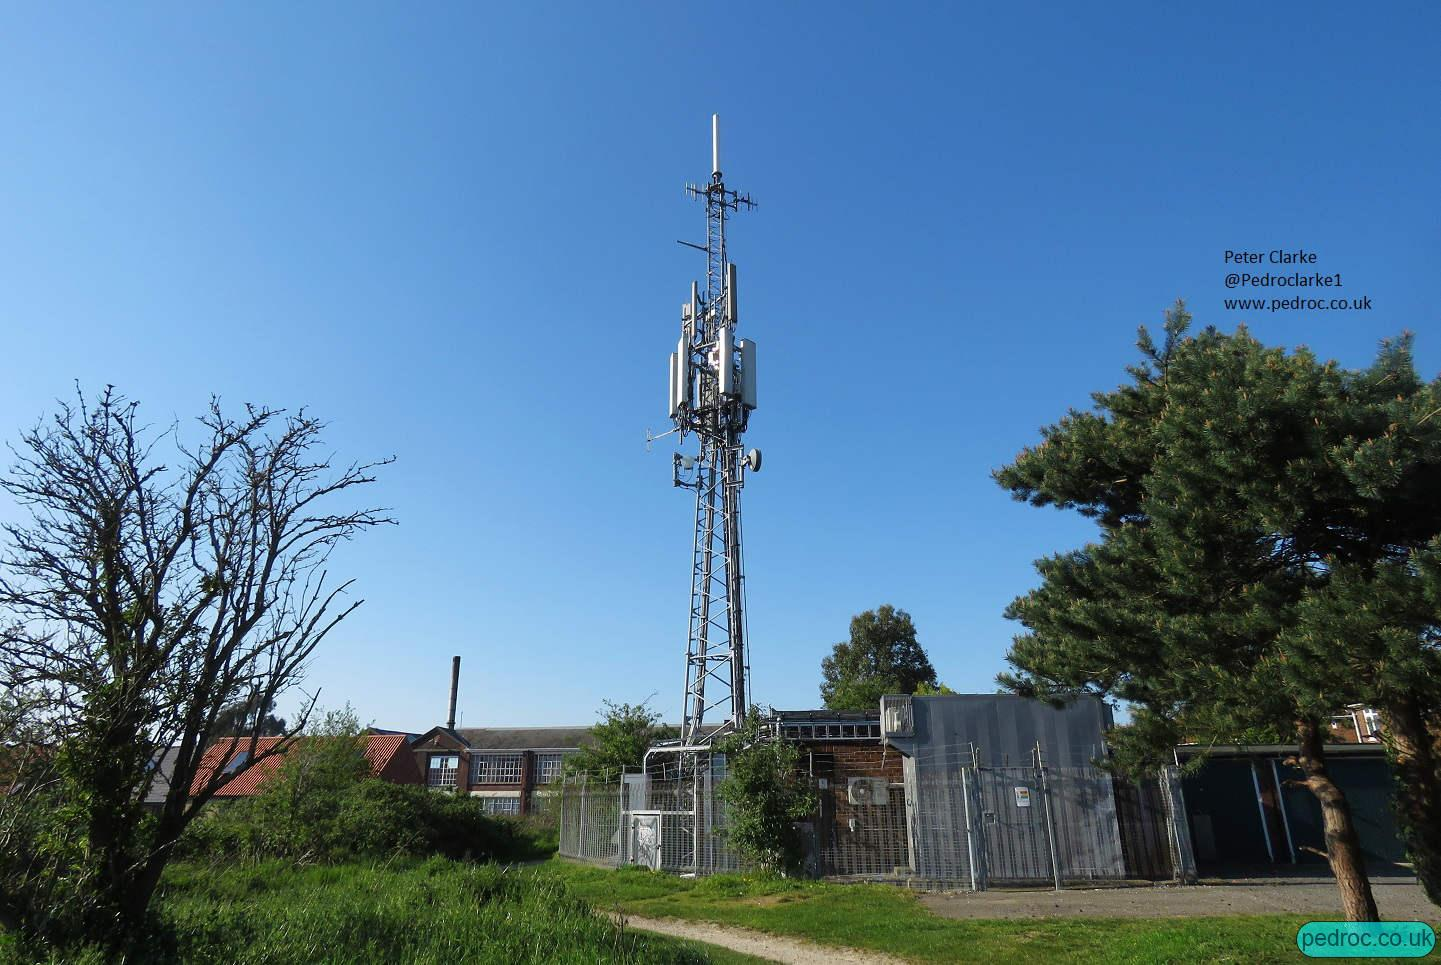 Norwich Arqiva Public Broadcasting mast with Digital TV, DAB and a variety of cellular equipment.